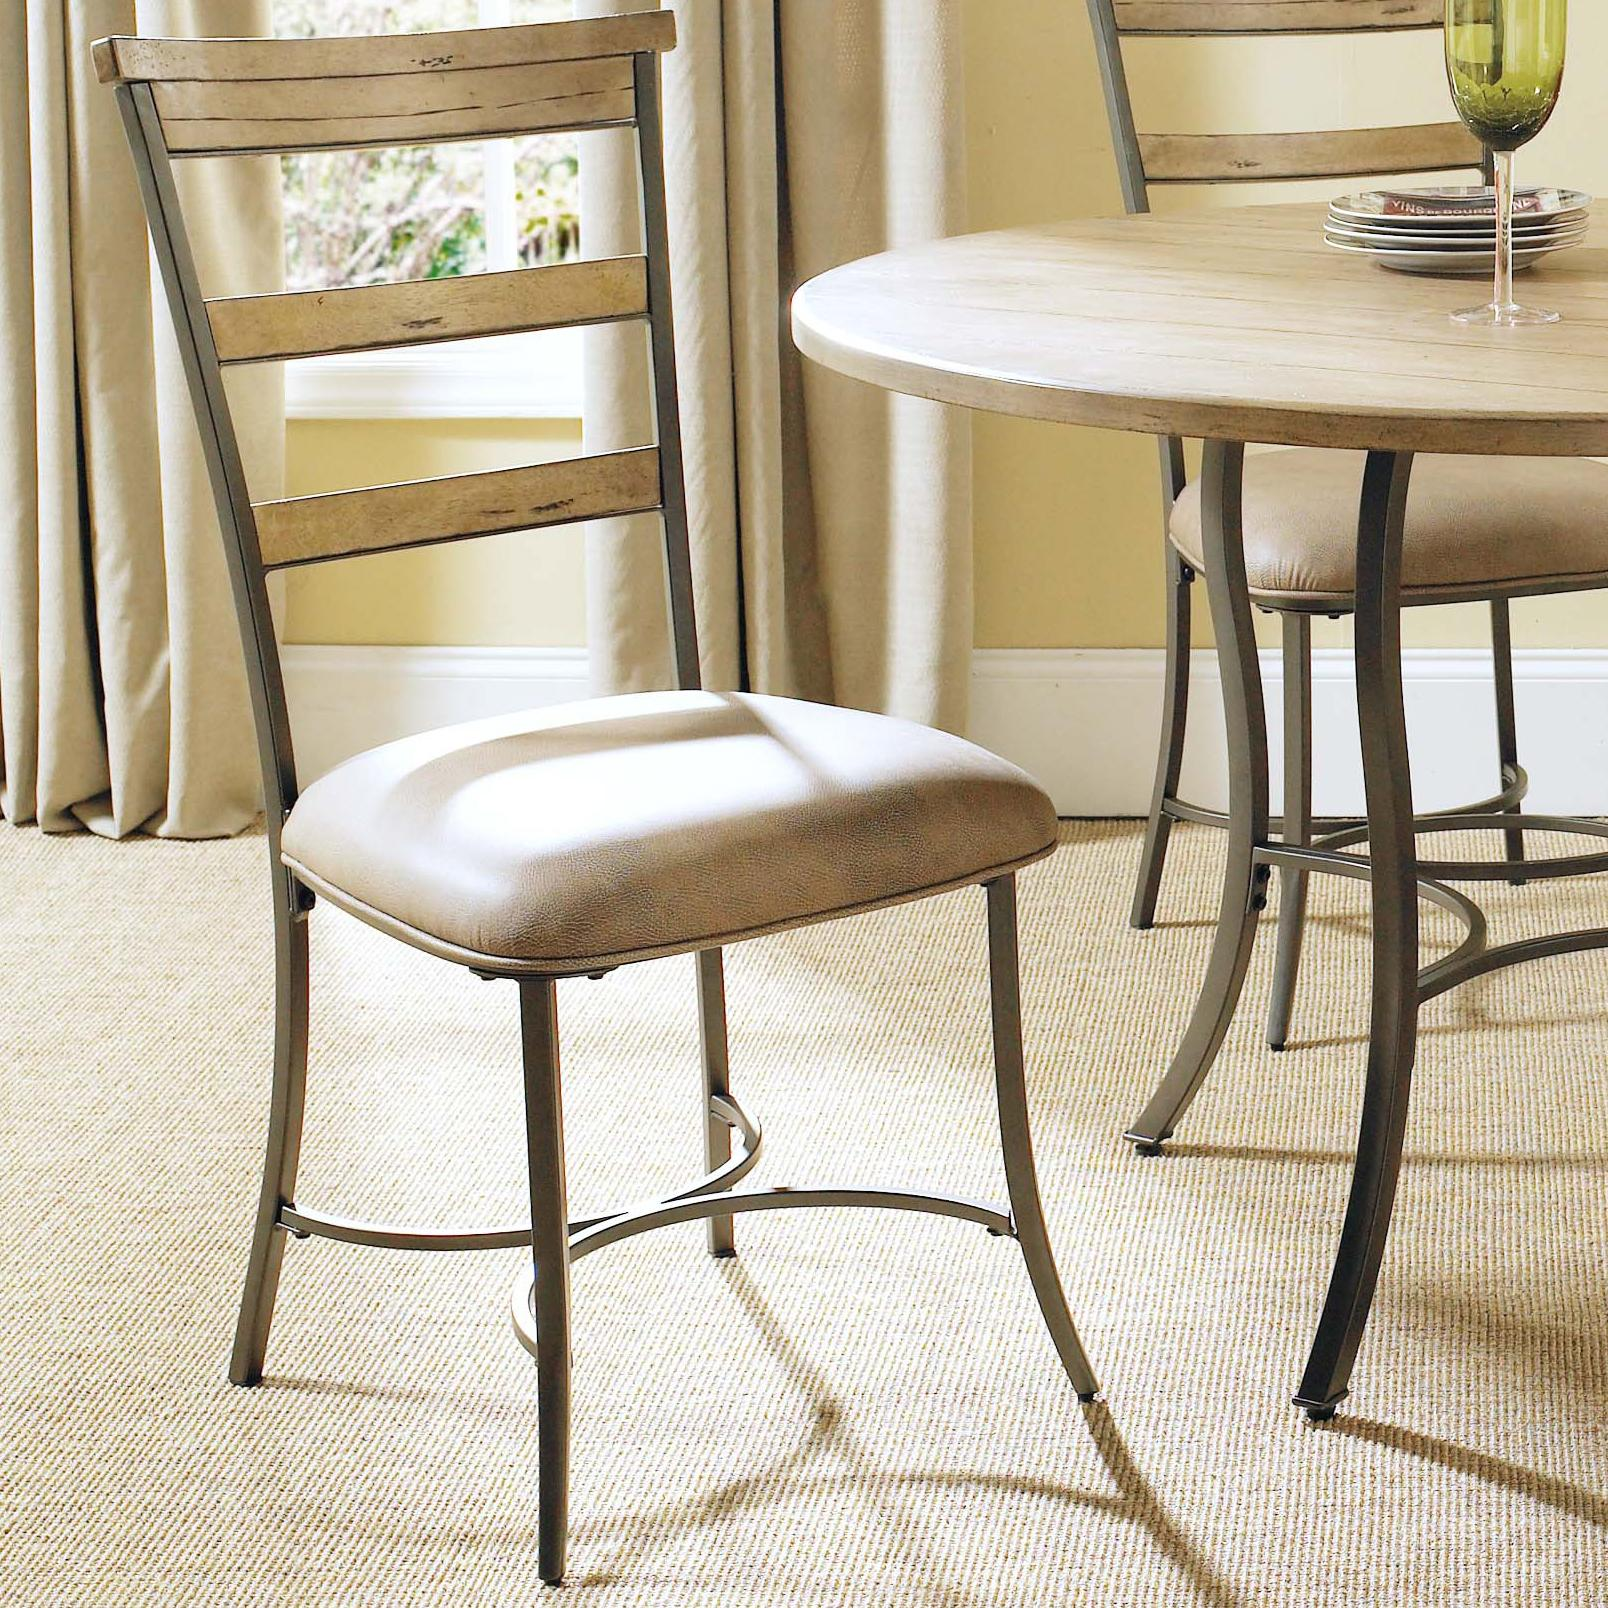 Hillsdale Charleston Ladder Back Dining Chair - Item Number: 4670-805